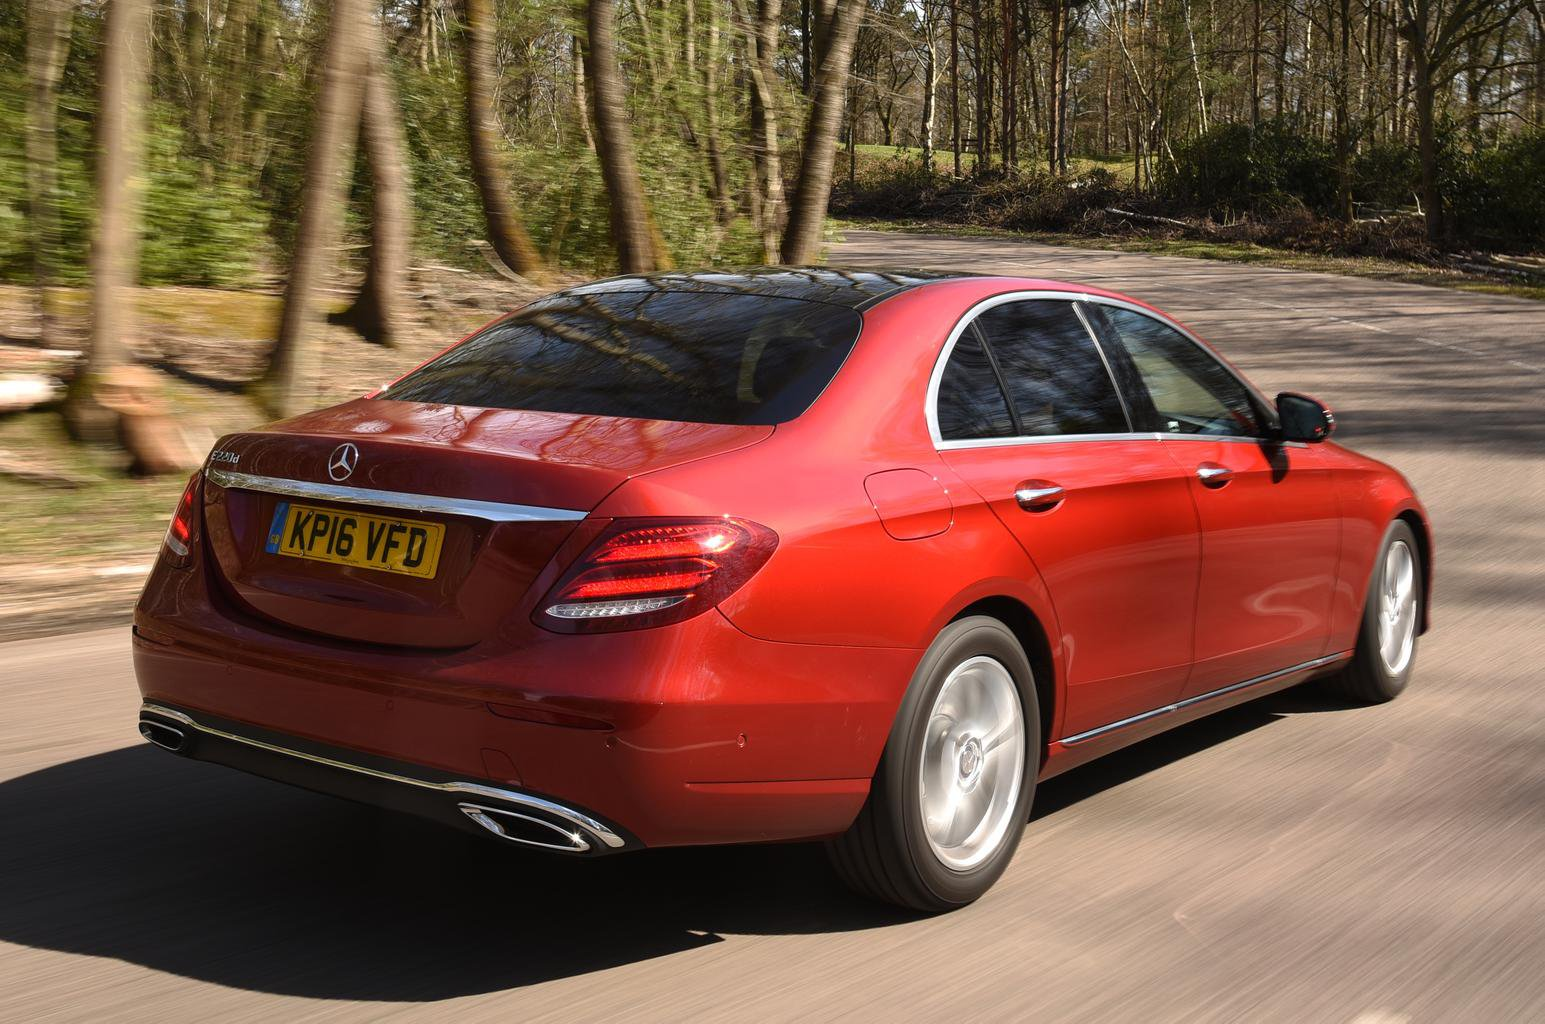 7 reasons to buy a Mercedes E-Class